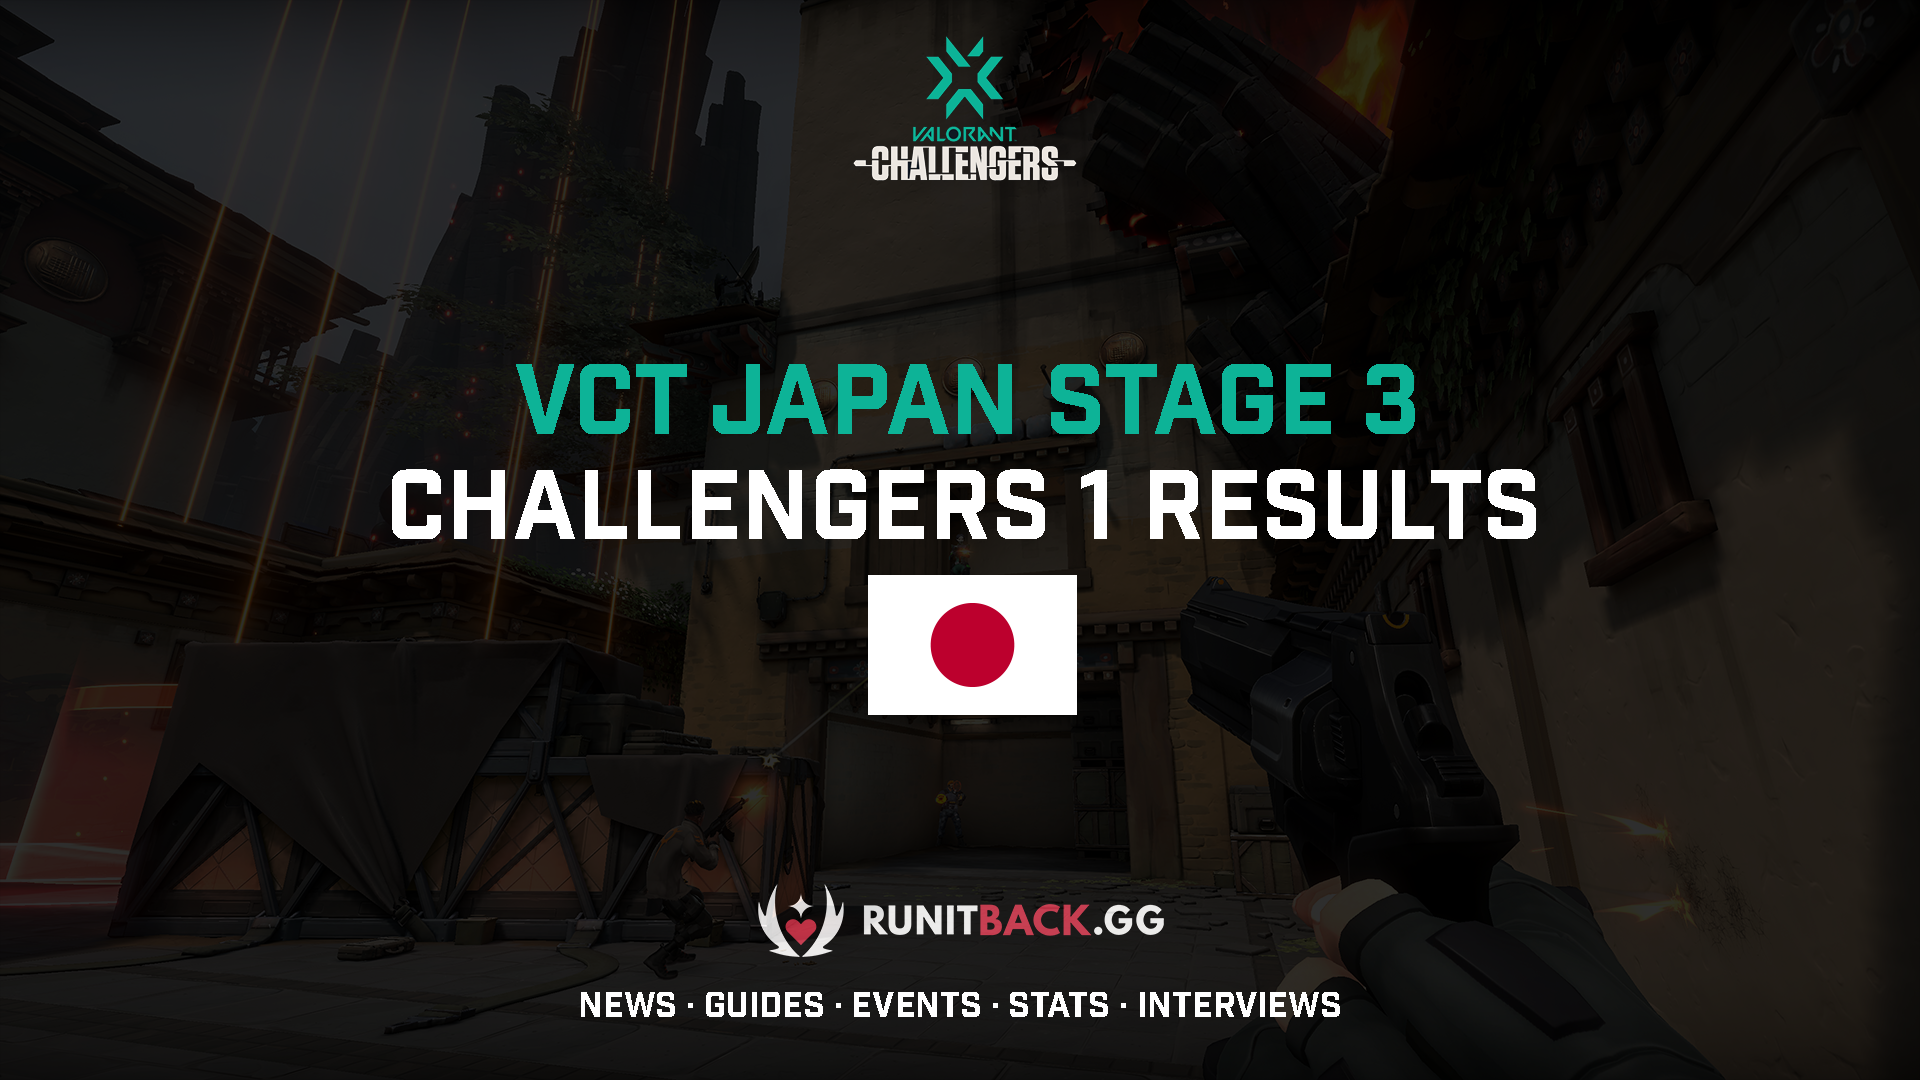 VCT Japan Stage 3 Challengers 1 Results